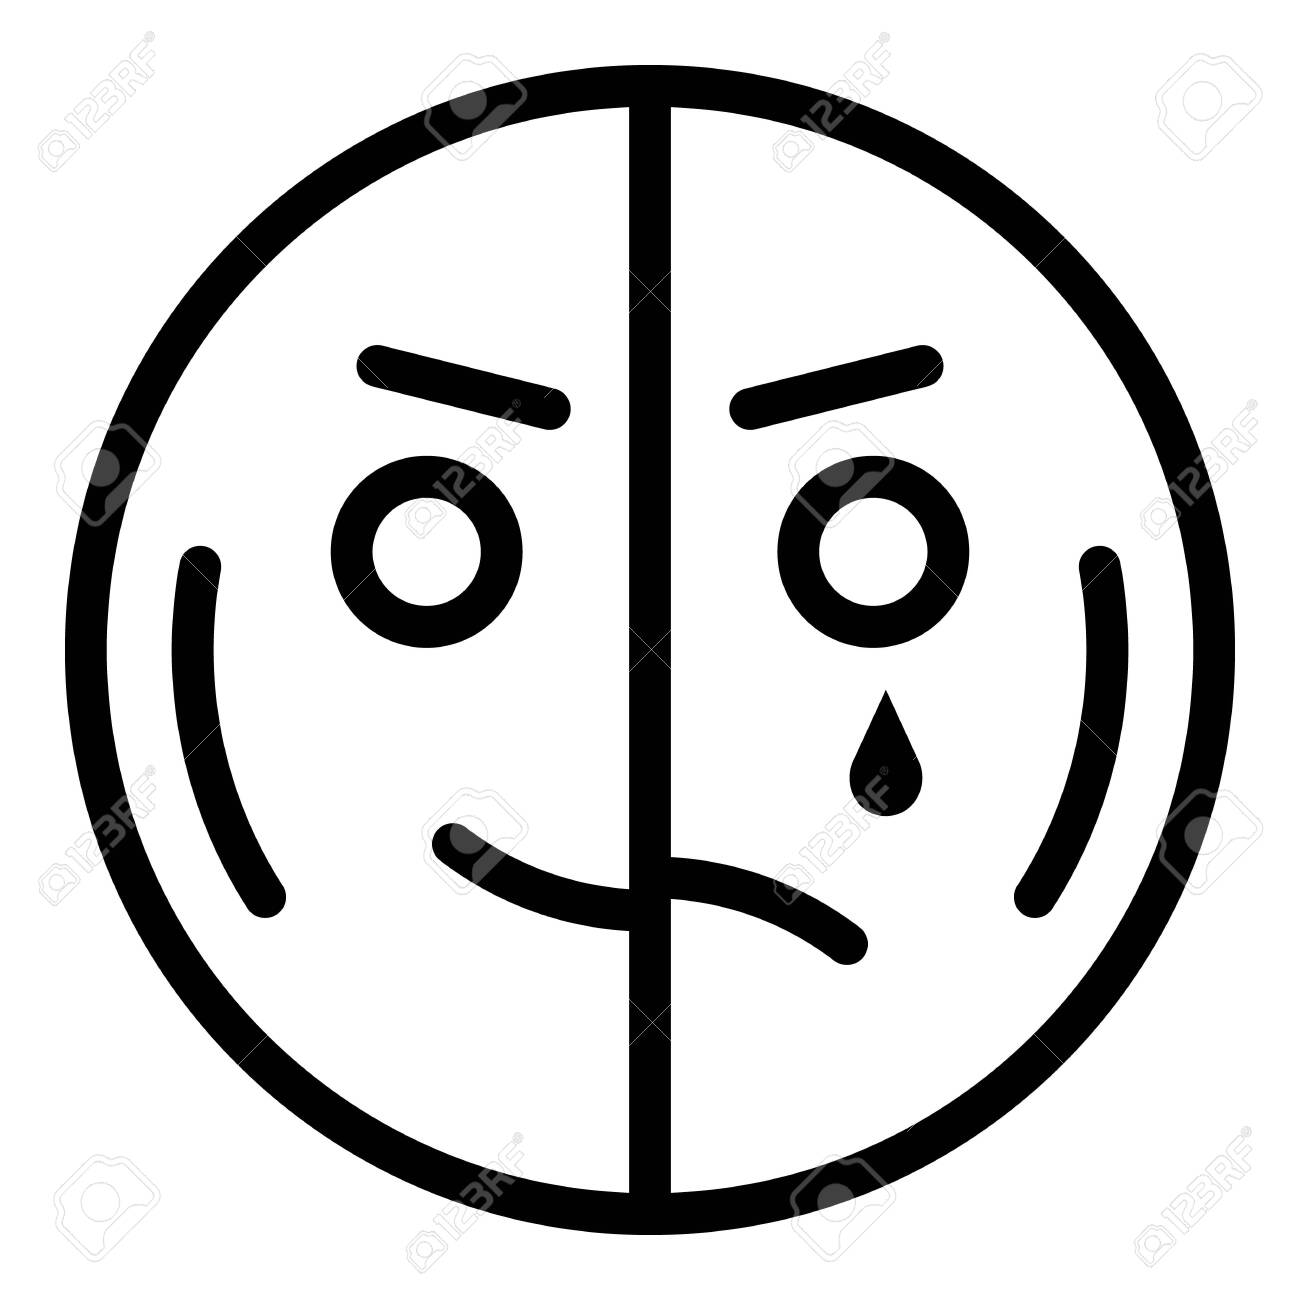 Happy Half Sad Emoji Icon Outline Style Royalty Free Cliparts Vectors And Stock Illustration Image 133400560